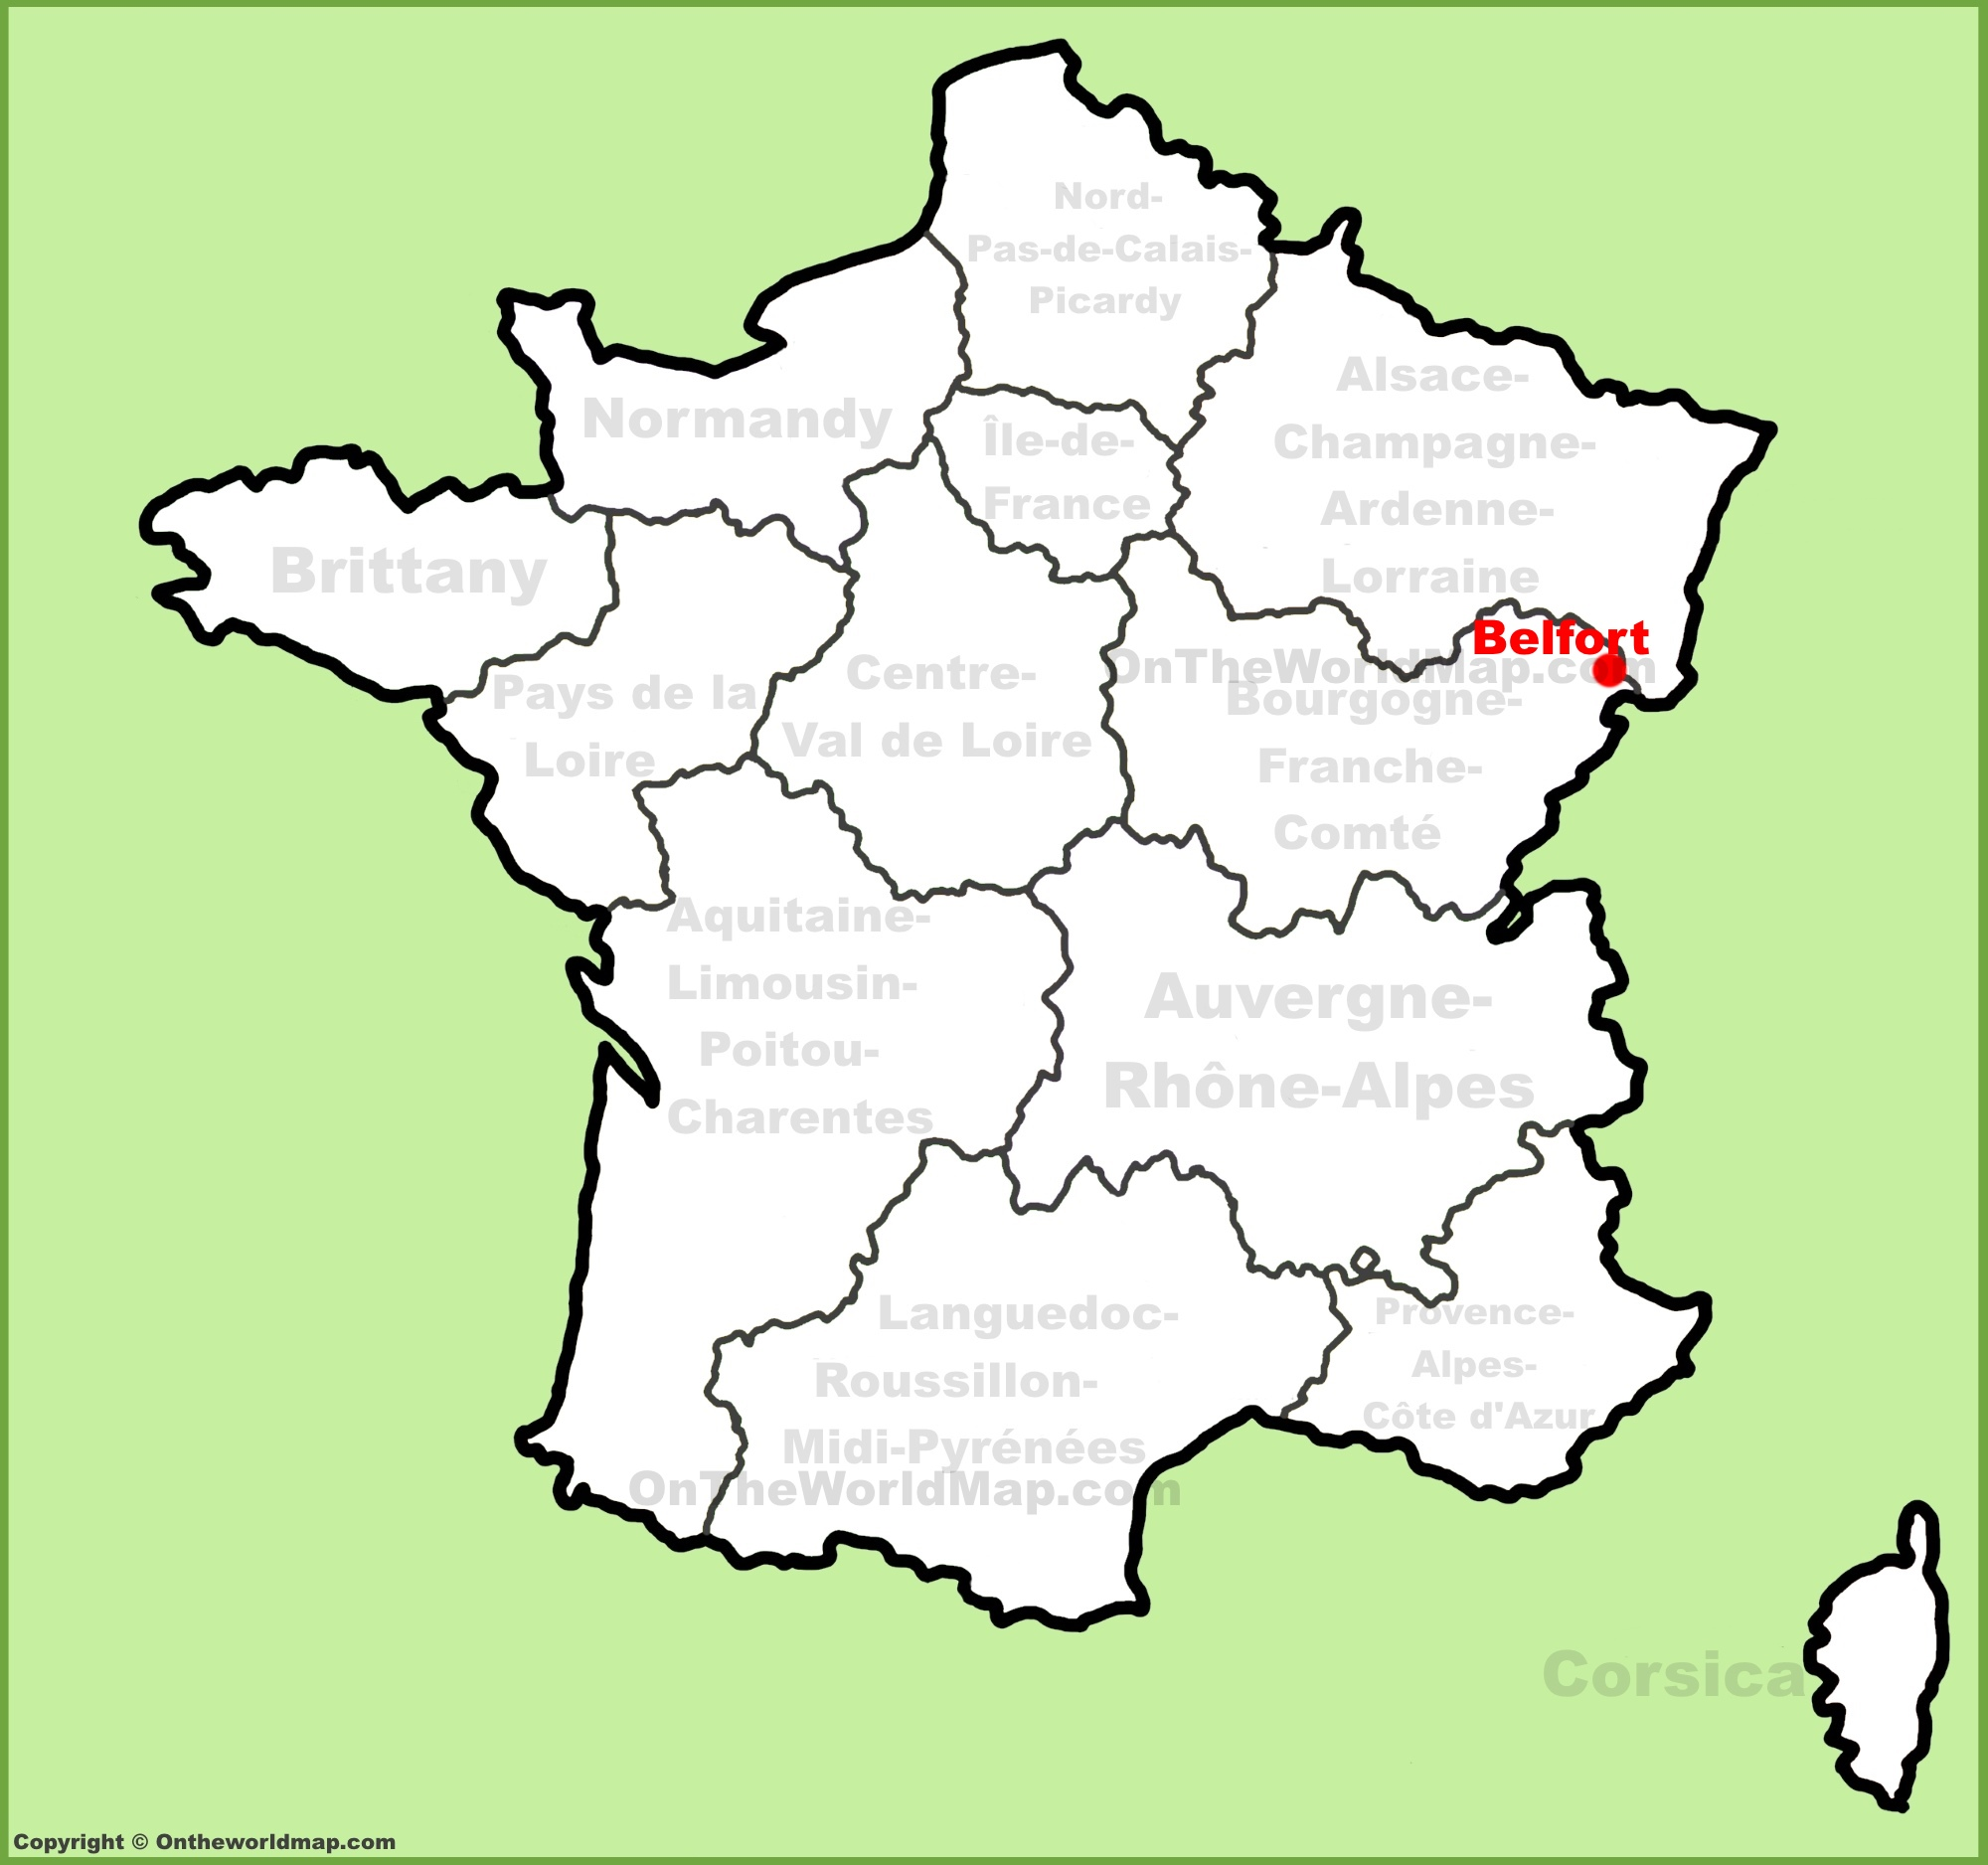 Belfort location on the France map